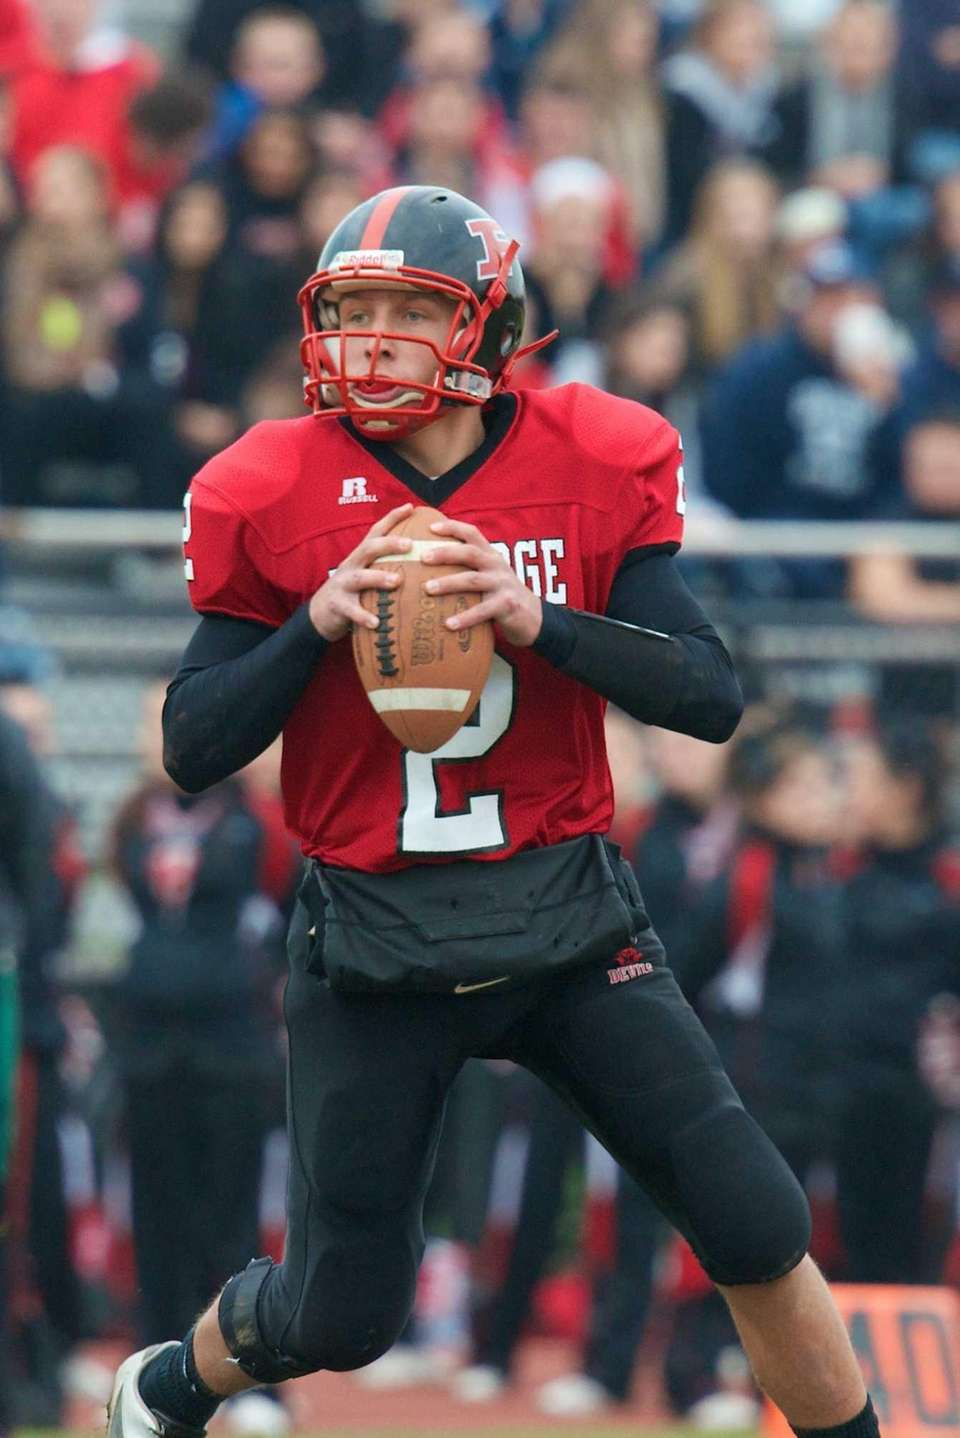 Plainedge quarterback Nick Frenger looks downfield for an